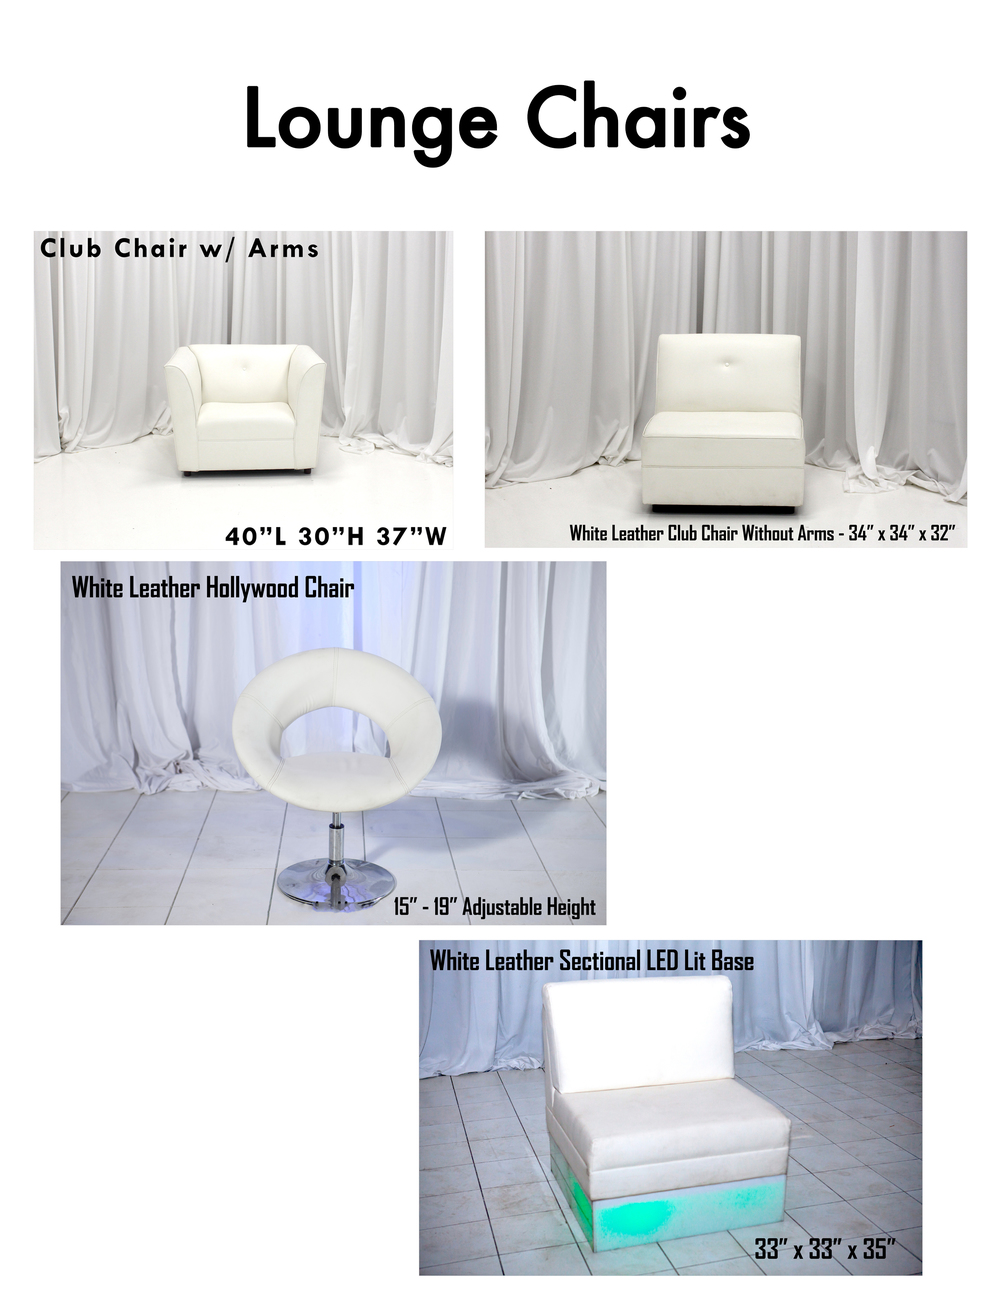 P48_Lounge Chairs.jpg